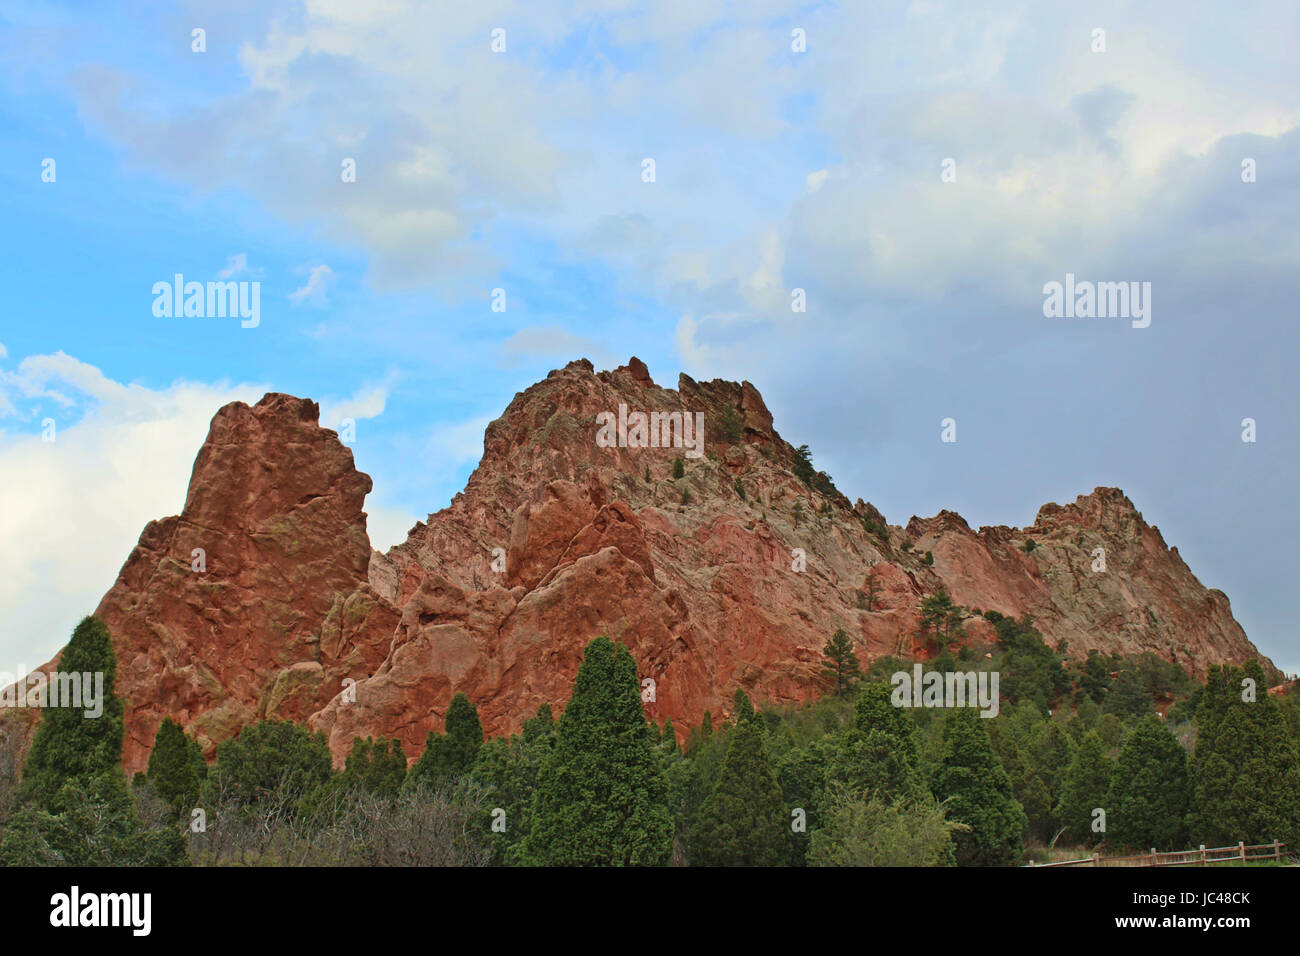 Large rock formation, made of red rock, and evergreentrees along a hiking trail at the Garden of the Gods in Colorado - Stock Image